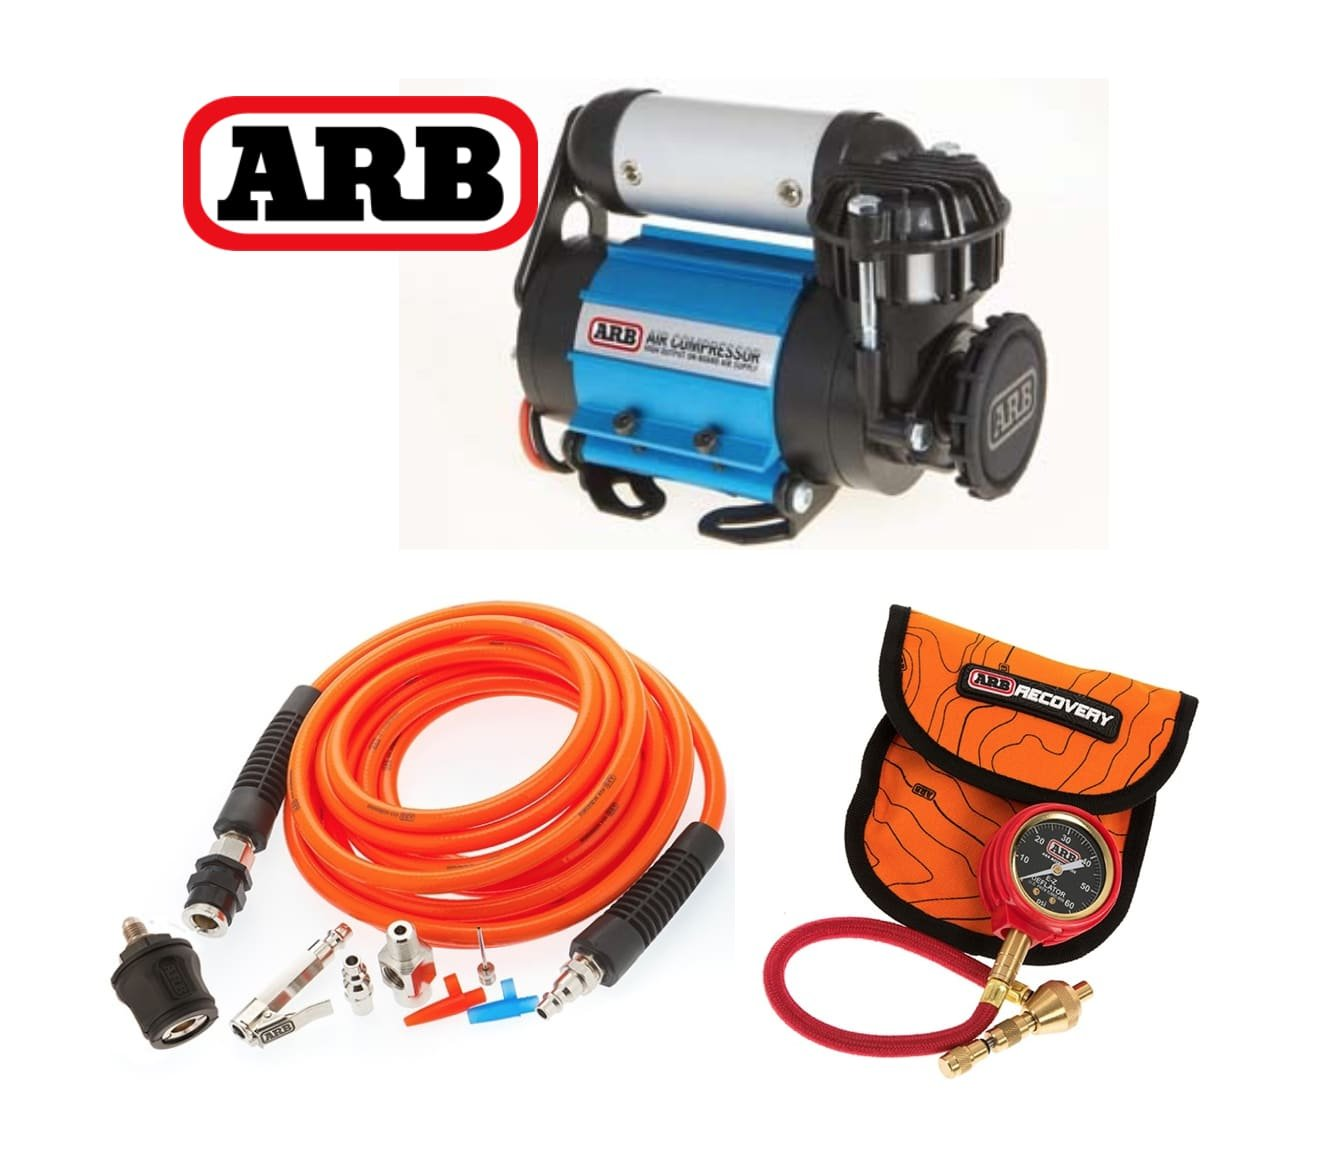 Arb Air Locker Wiring Harness Library Amazoncom Ultimate Wheeler Pack Hd Compressor Pump Up Kit